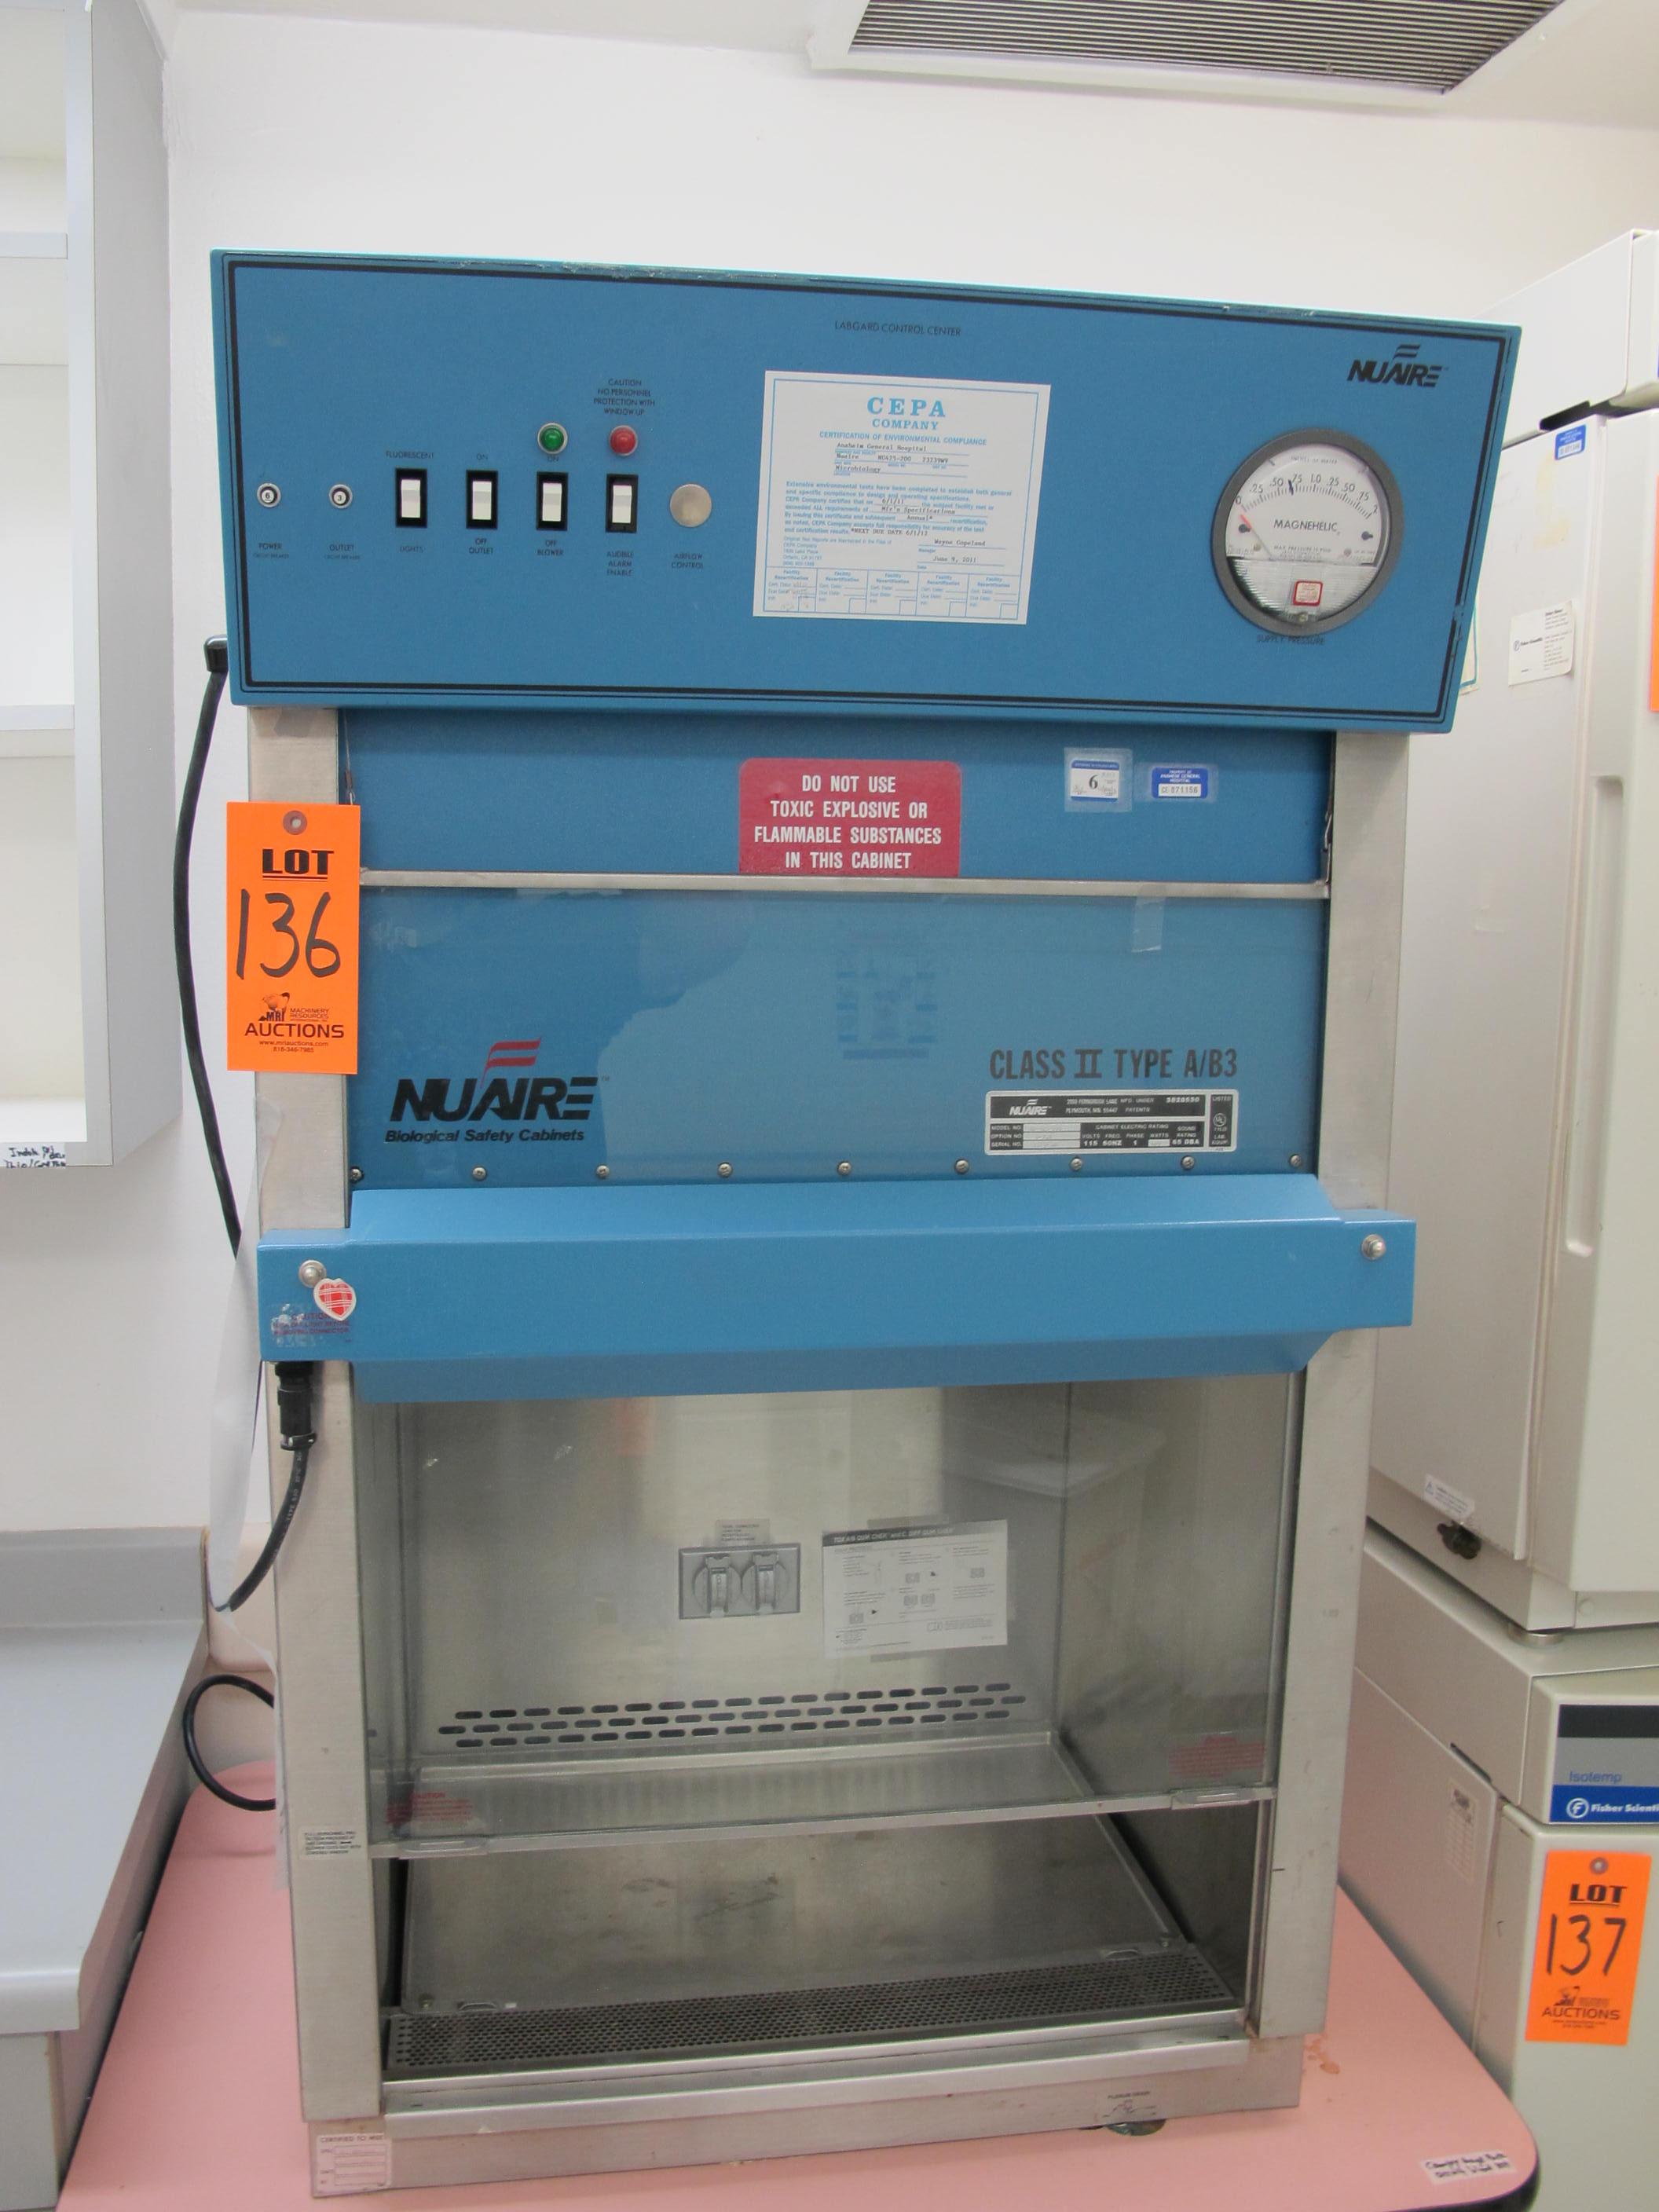 nuaire biological safety cabinet class ii type a b3 – cabinets